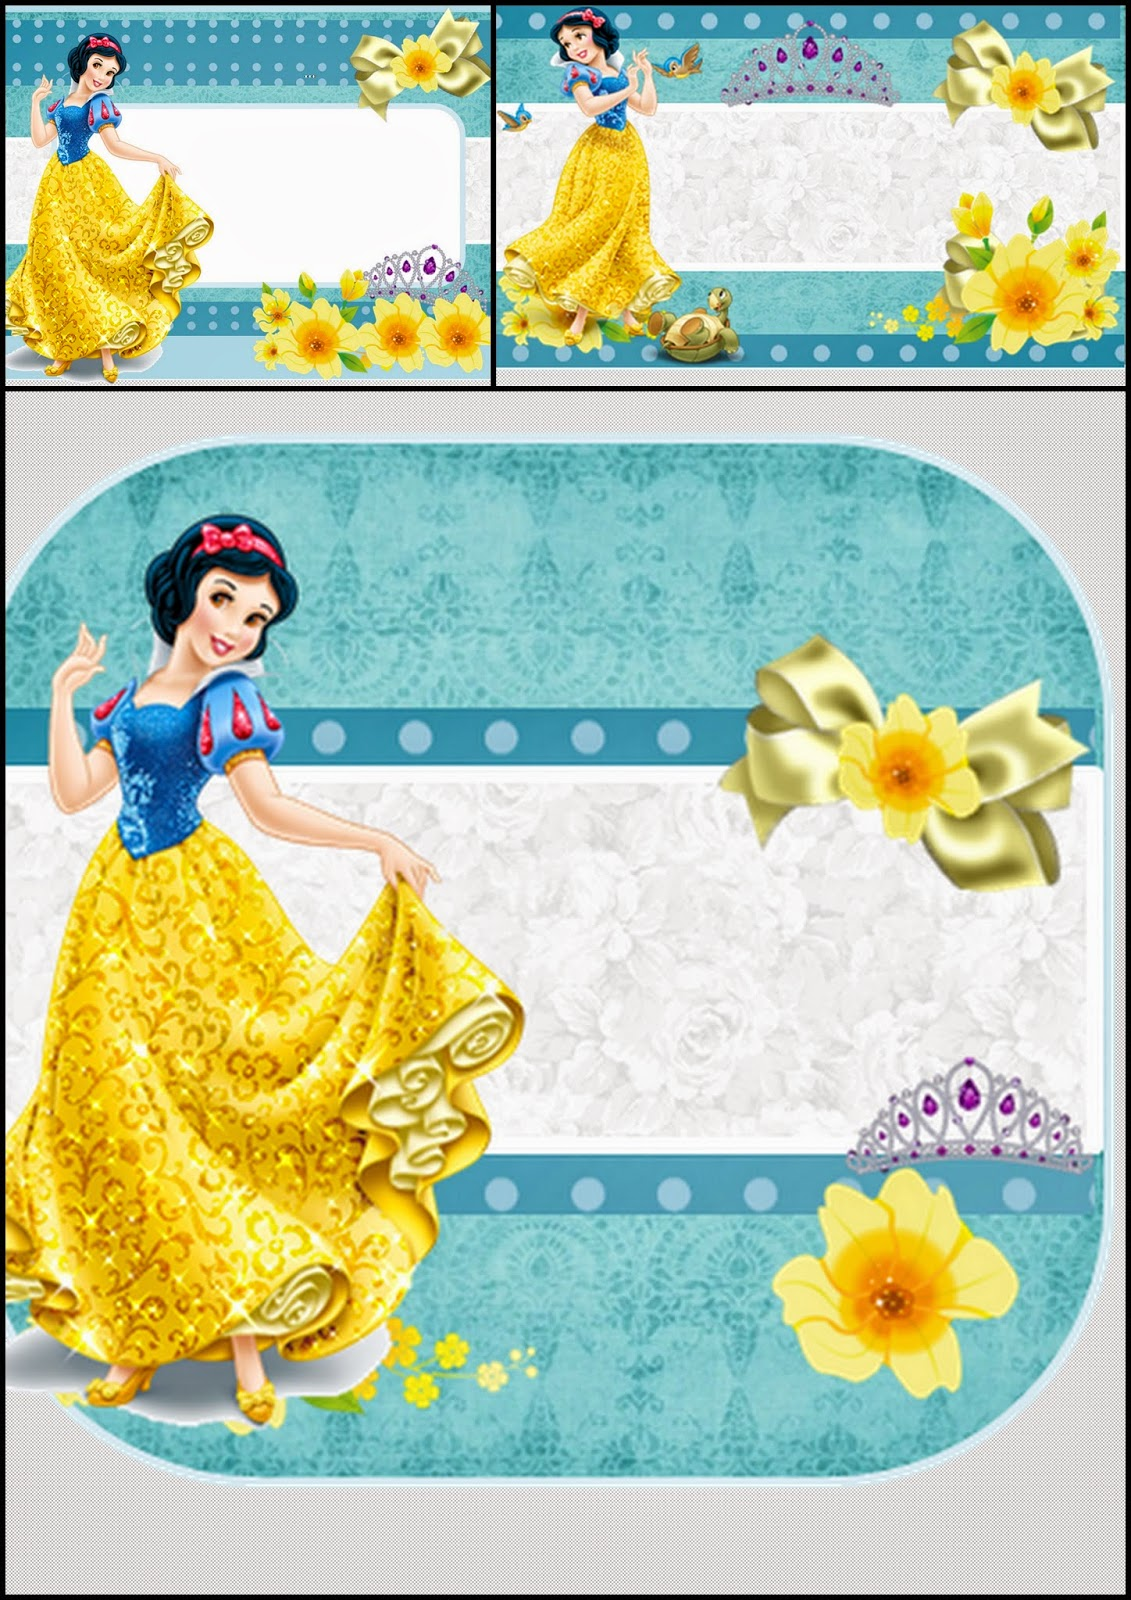 image relating to Snow White Invitations Printable identify Snow White Totally free Printable Invites or Image Frames. - Oh